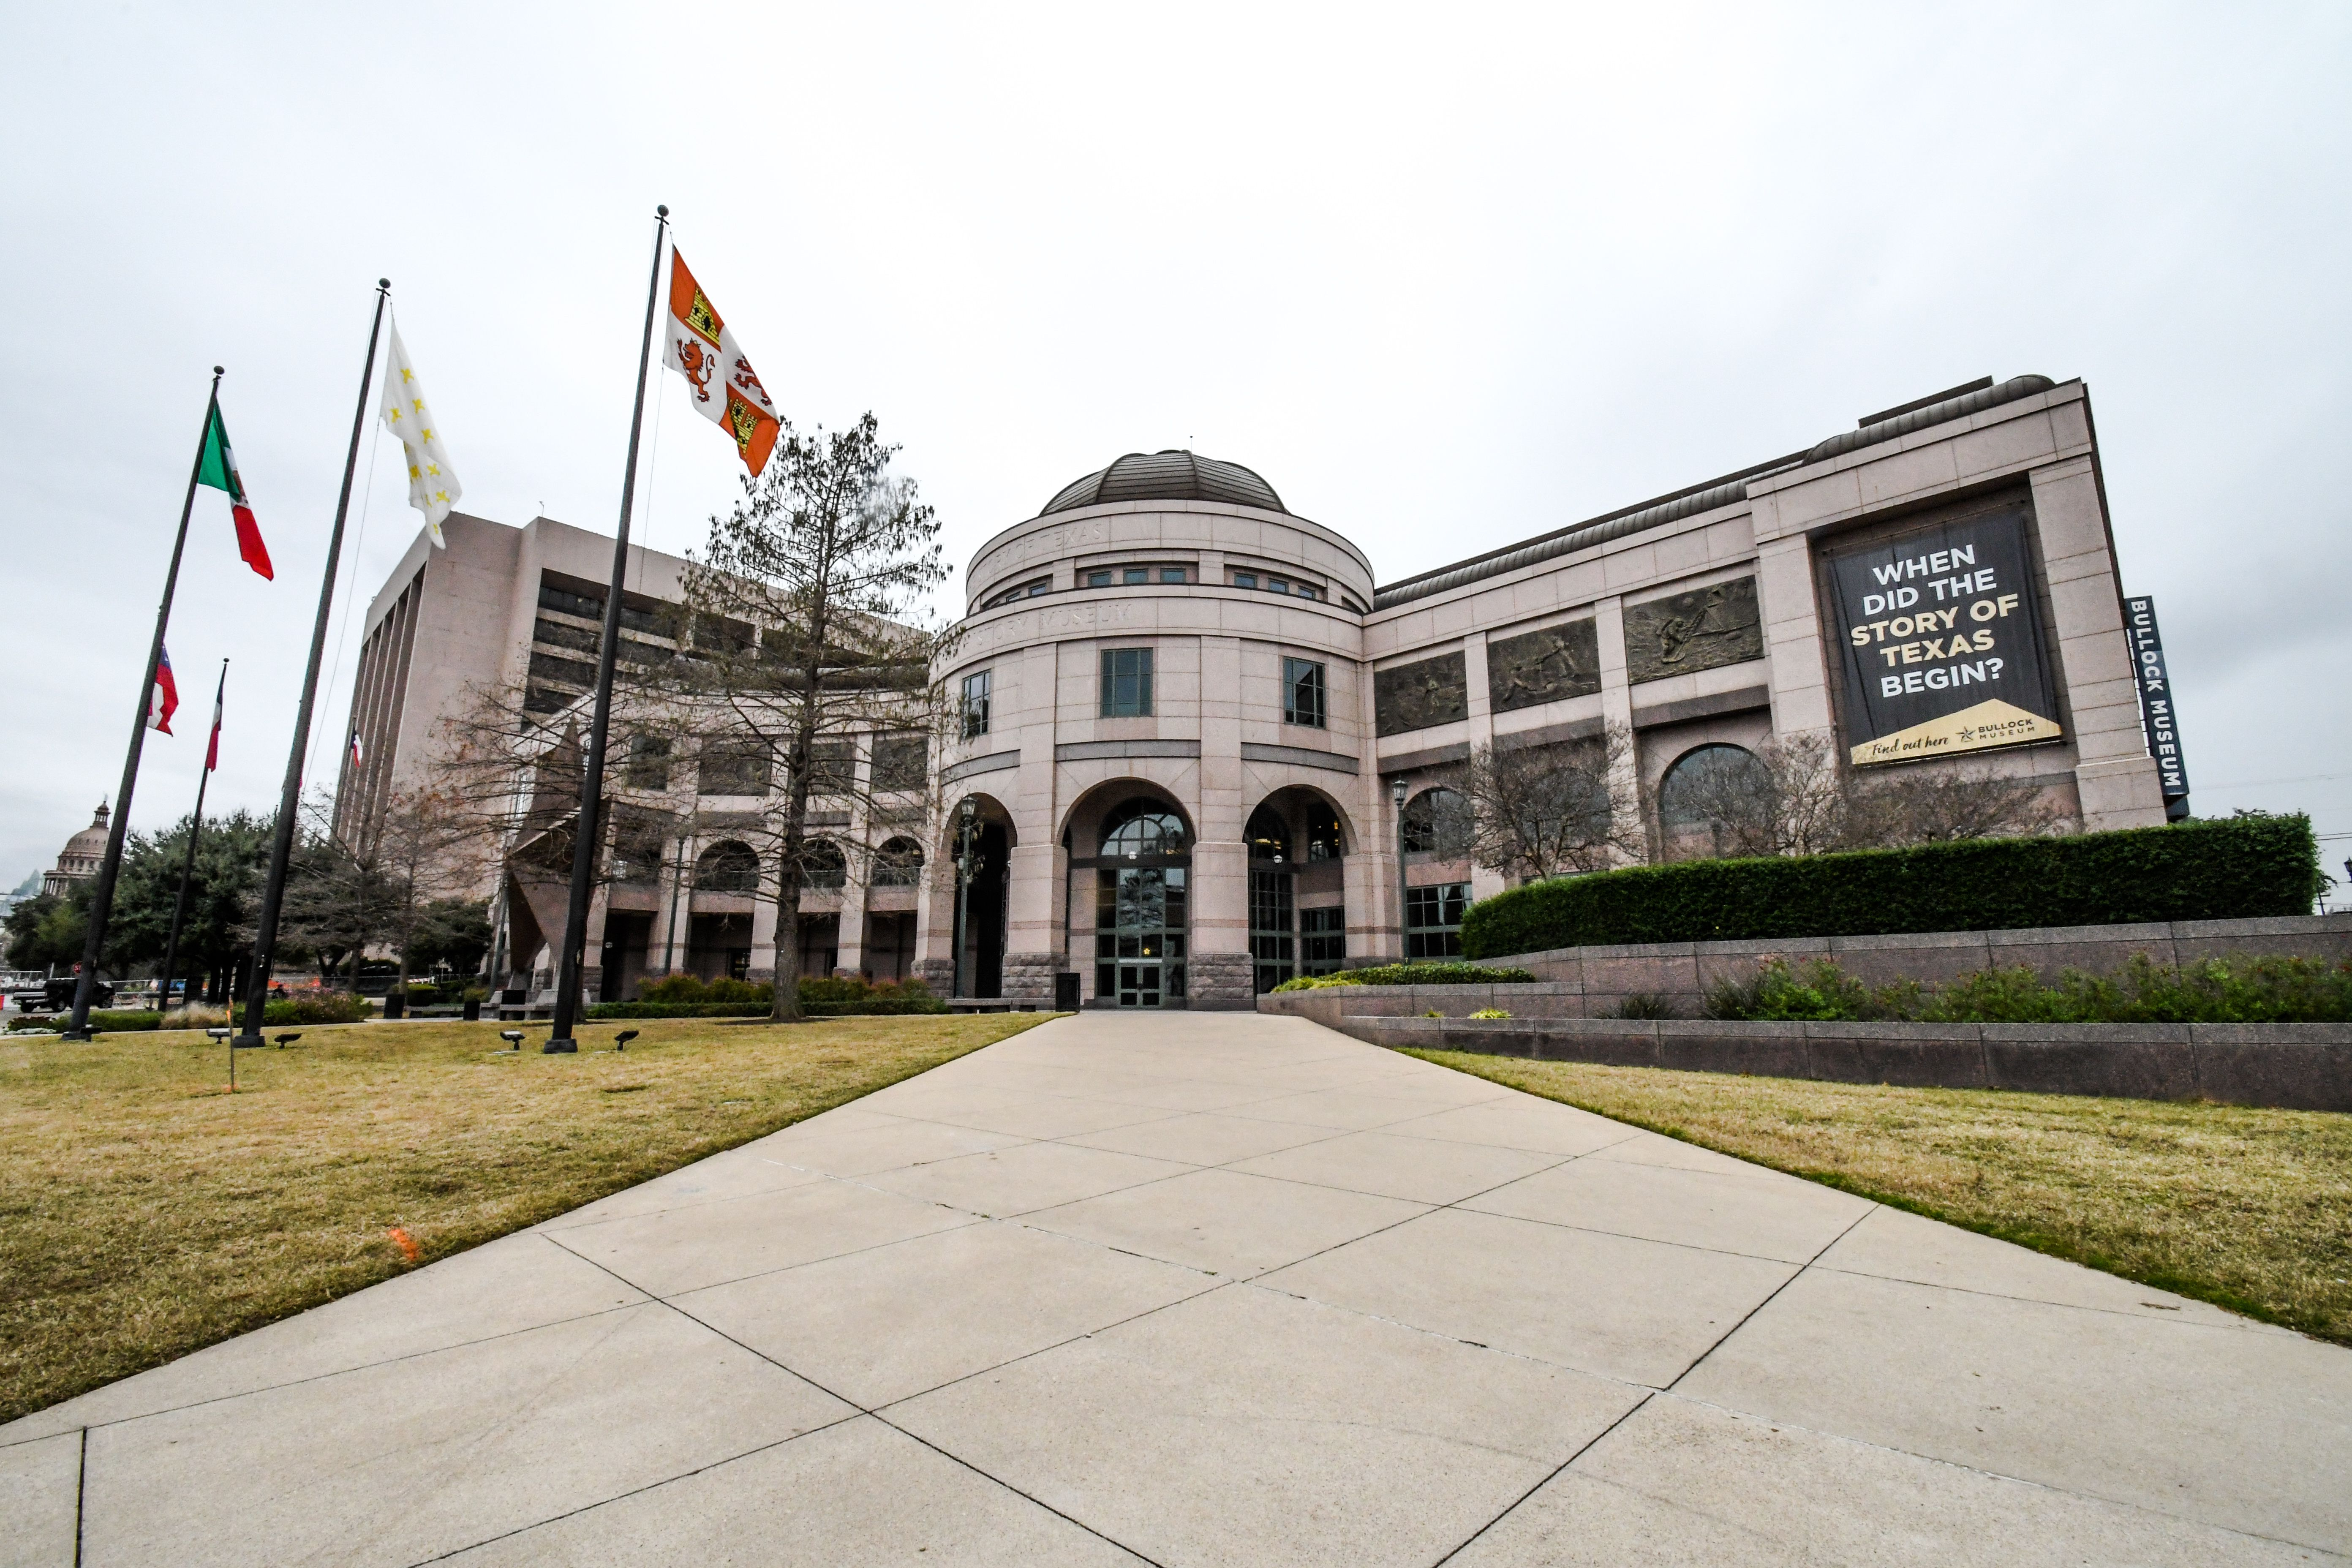 The Top 9 Museums to Visit in Austin, TX